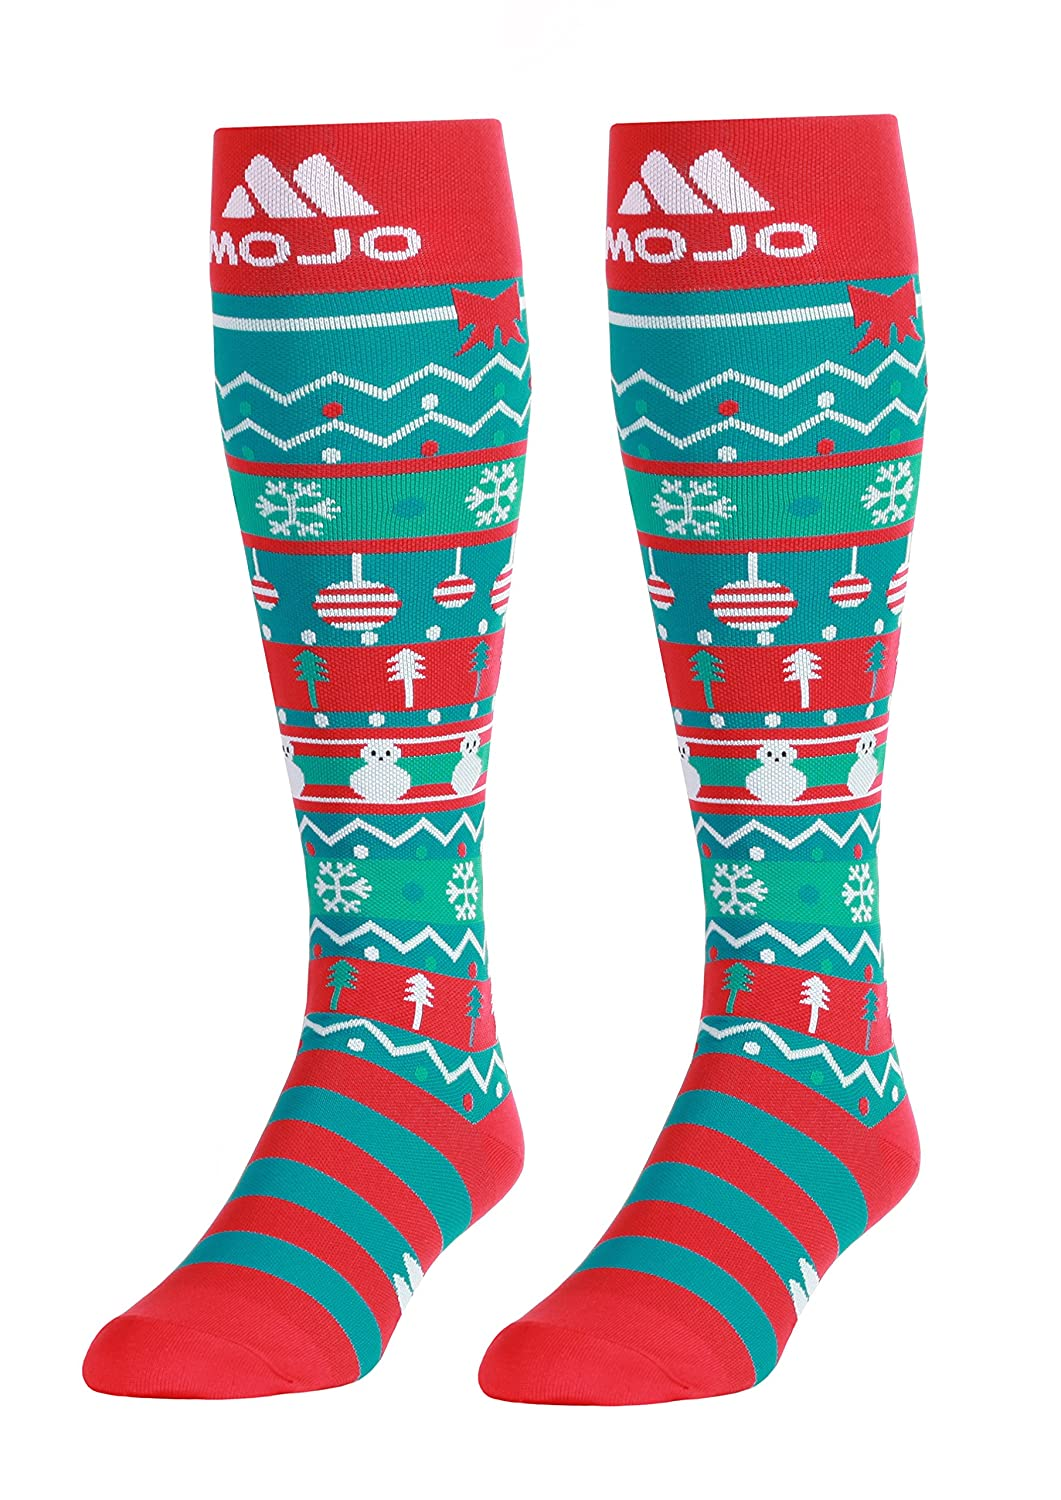 Amazon.com: Christmas Compression Socks – Graduated Compression Stockings - Firm Support 20-30mmHg - Mojo Compression Socks - Size Medium: Health & Personal ...